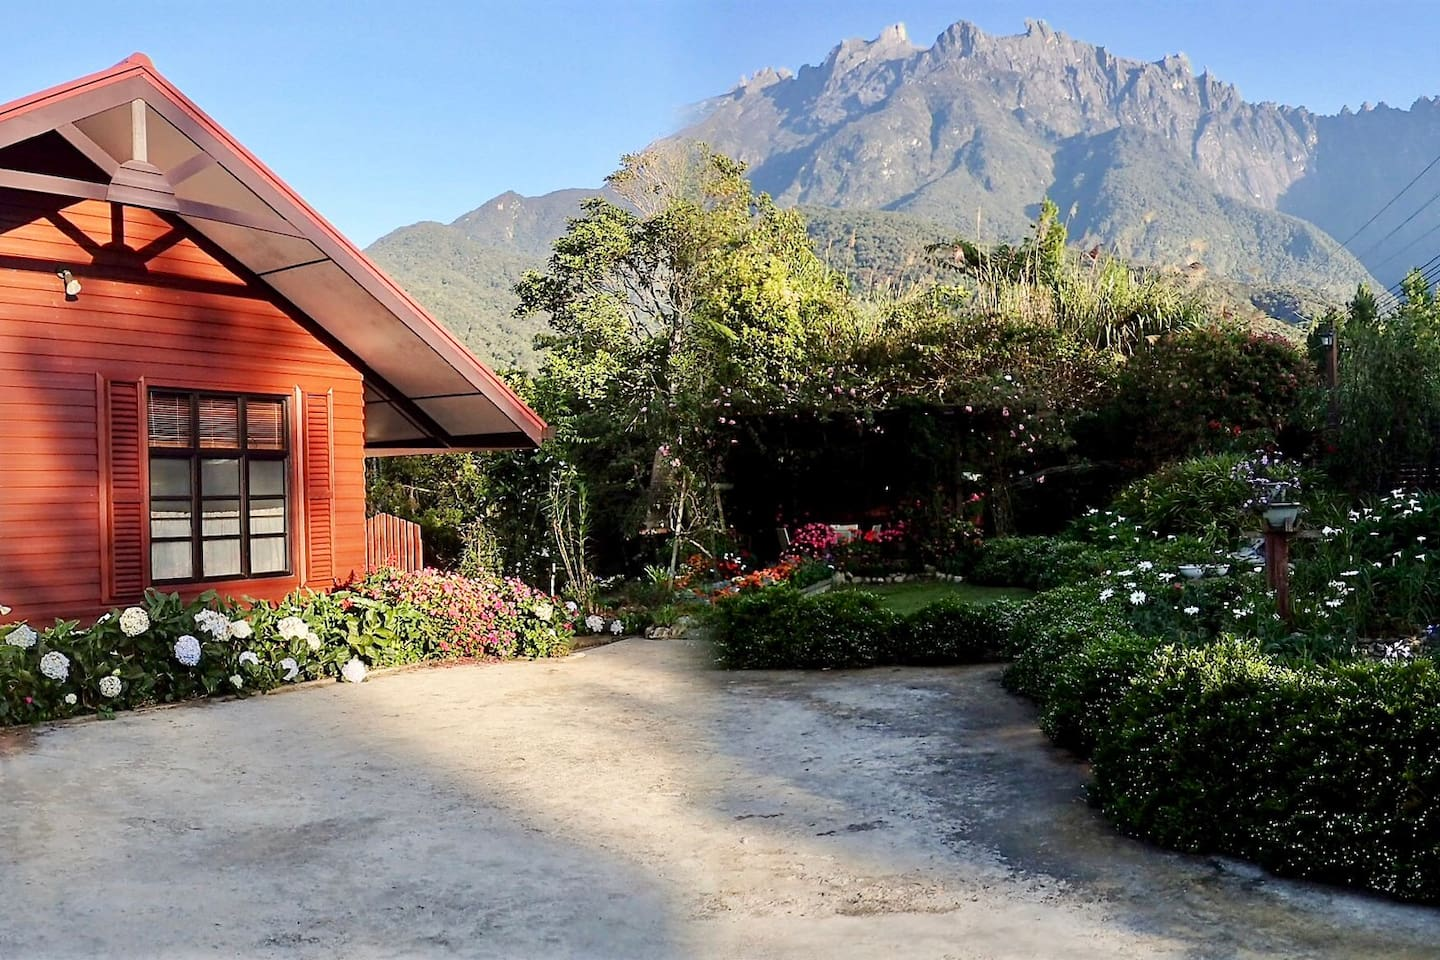 The main Chalet with Mount Kinabalu in the background